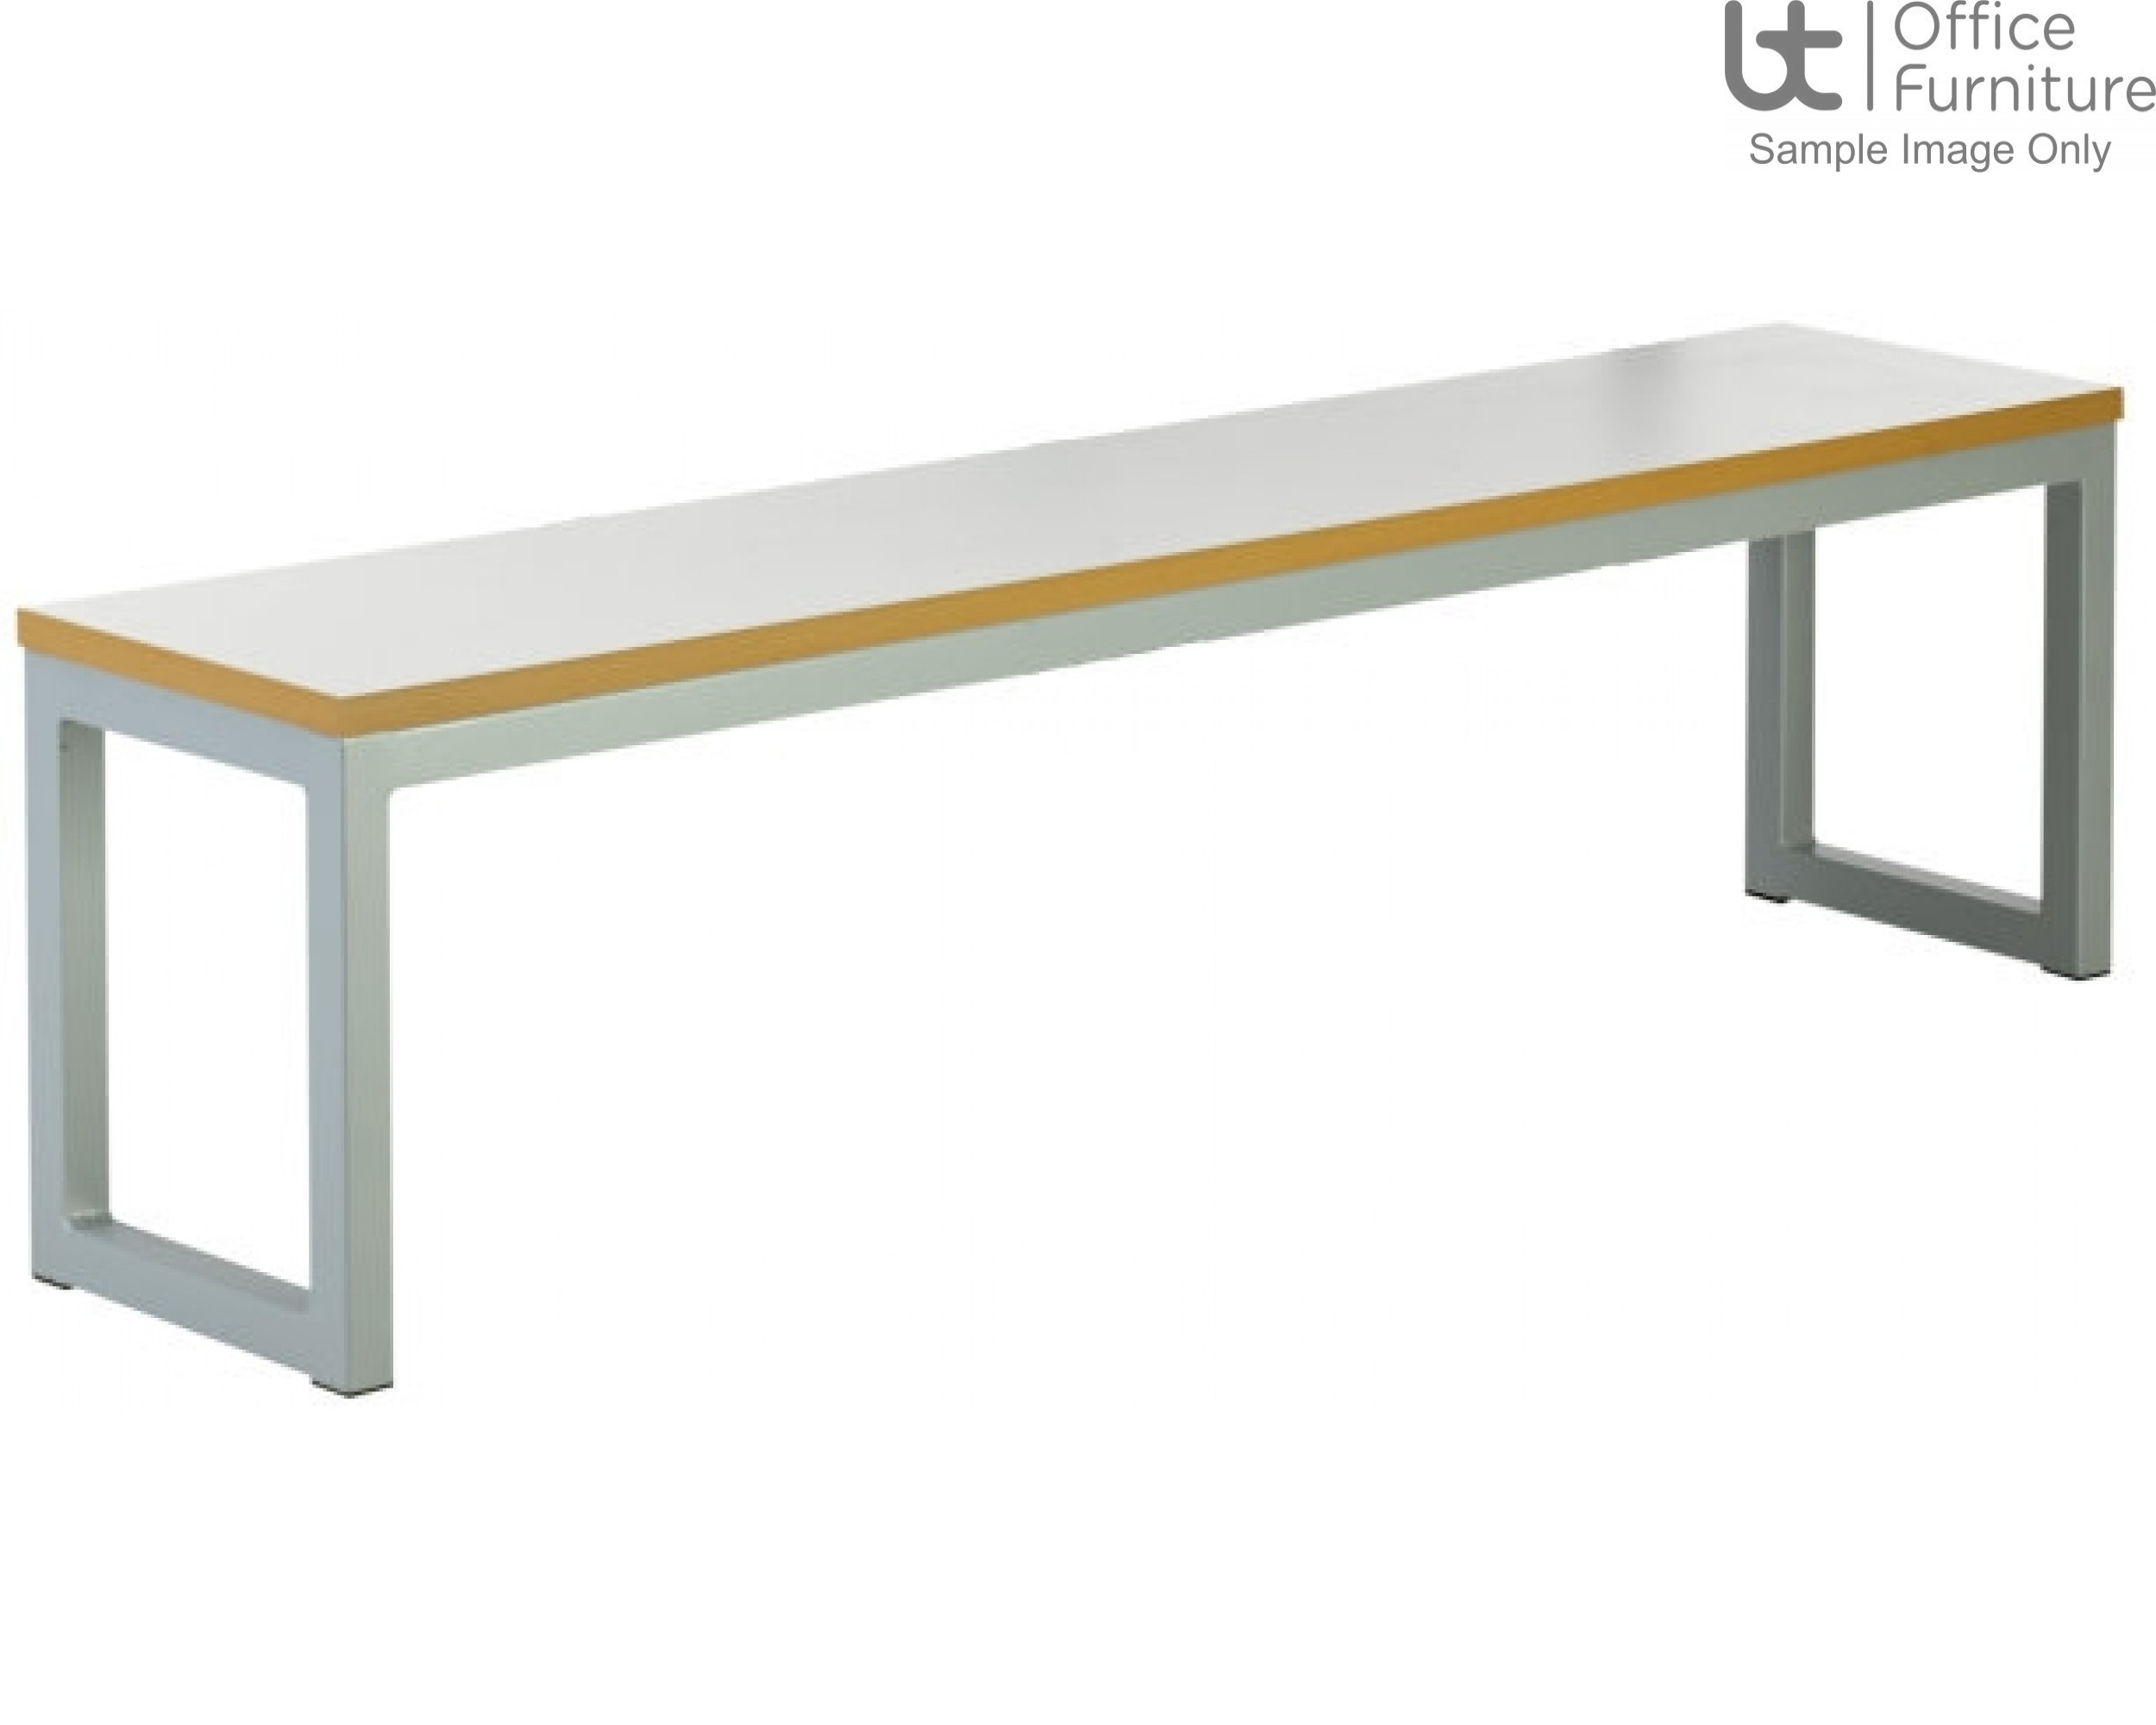 Urban 40/40 Robust 25mm Laminate Top School Bench Seat W2100mm (Std Frame Colours)